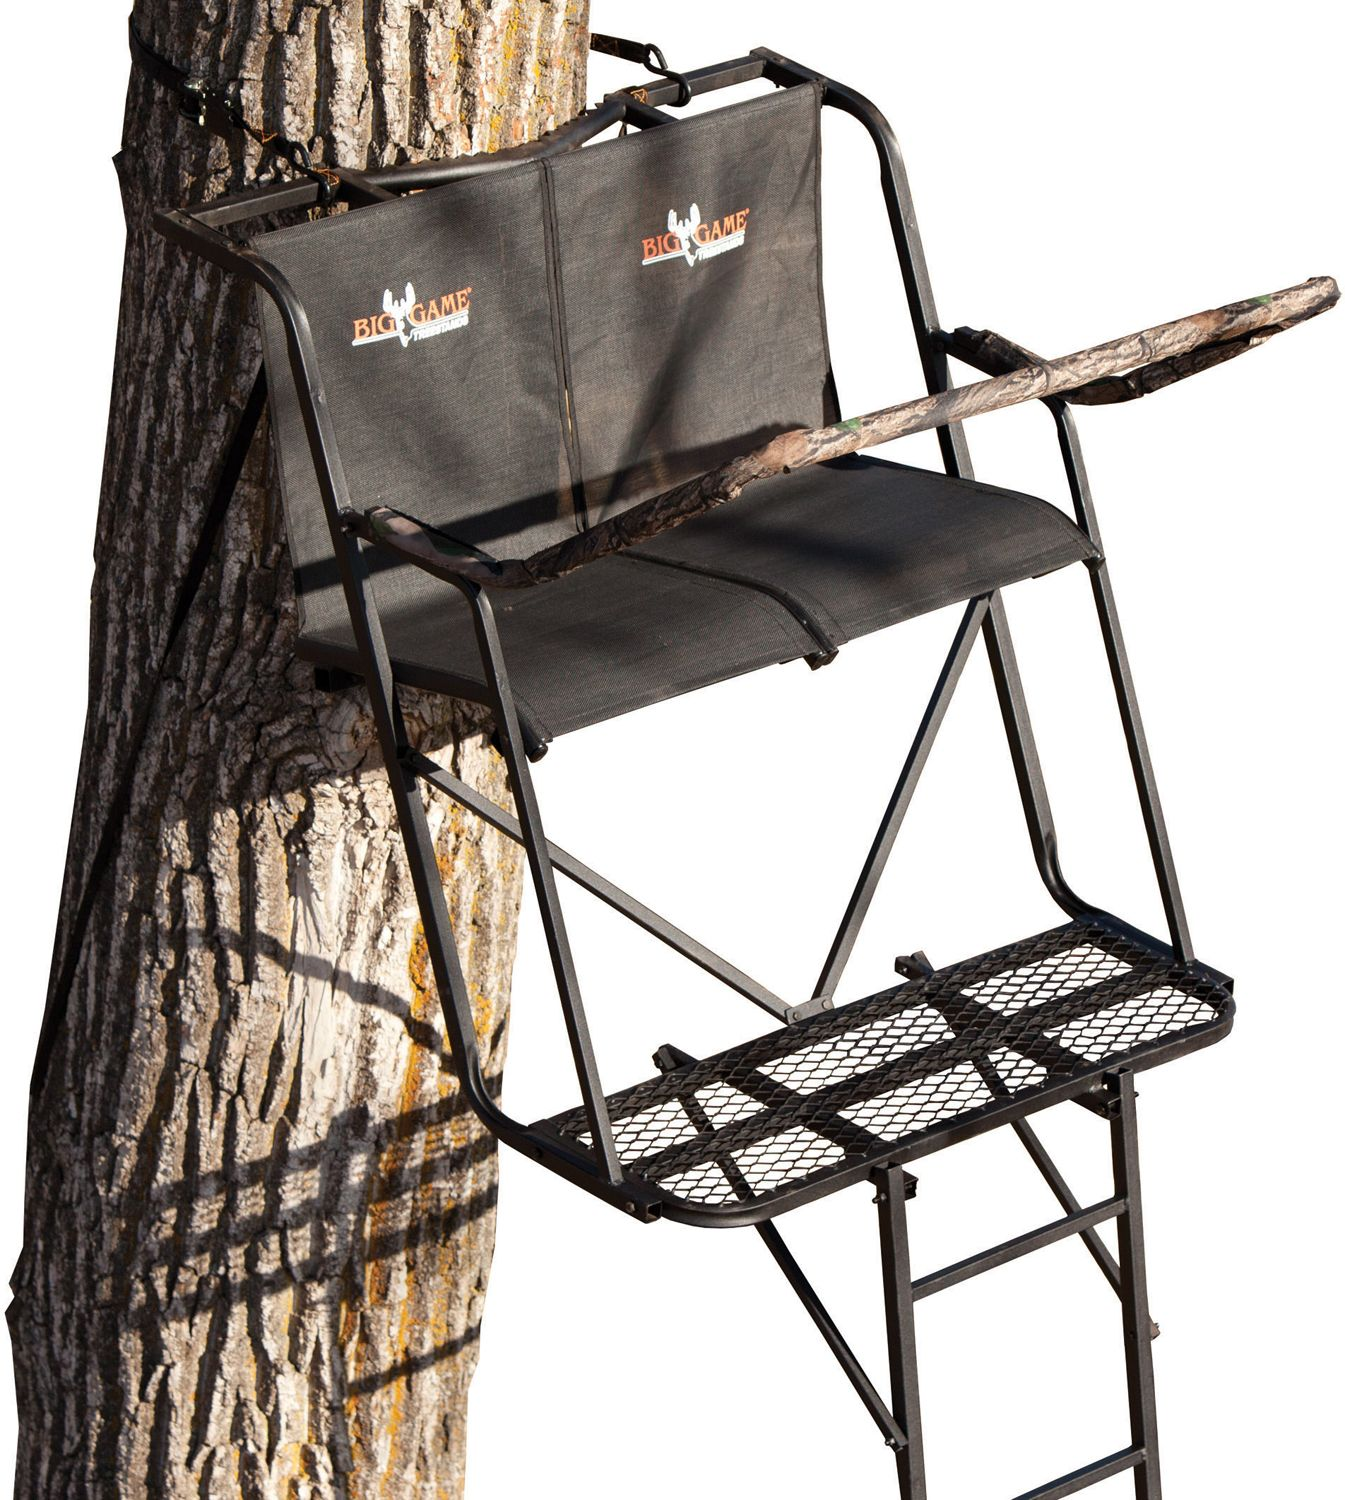 Big Game Big Buddy 16′ Ladder Stand, steel